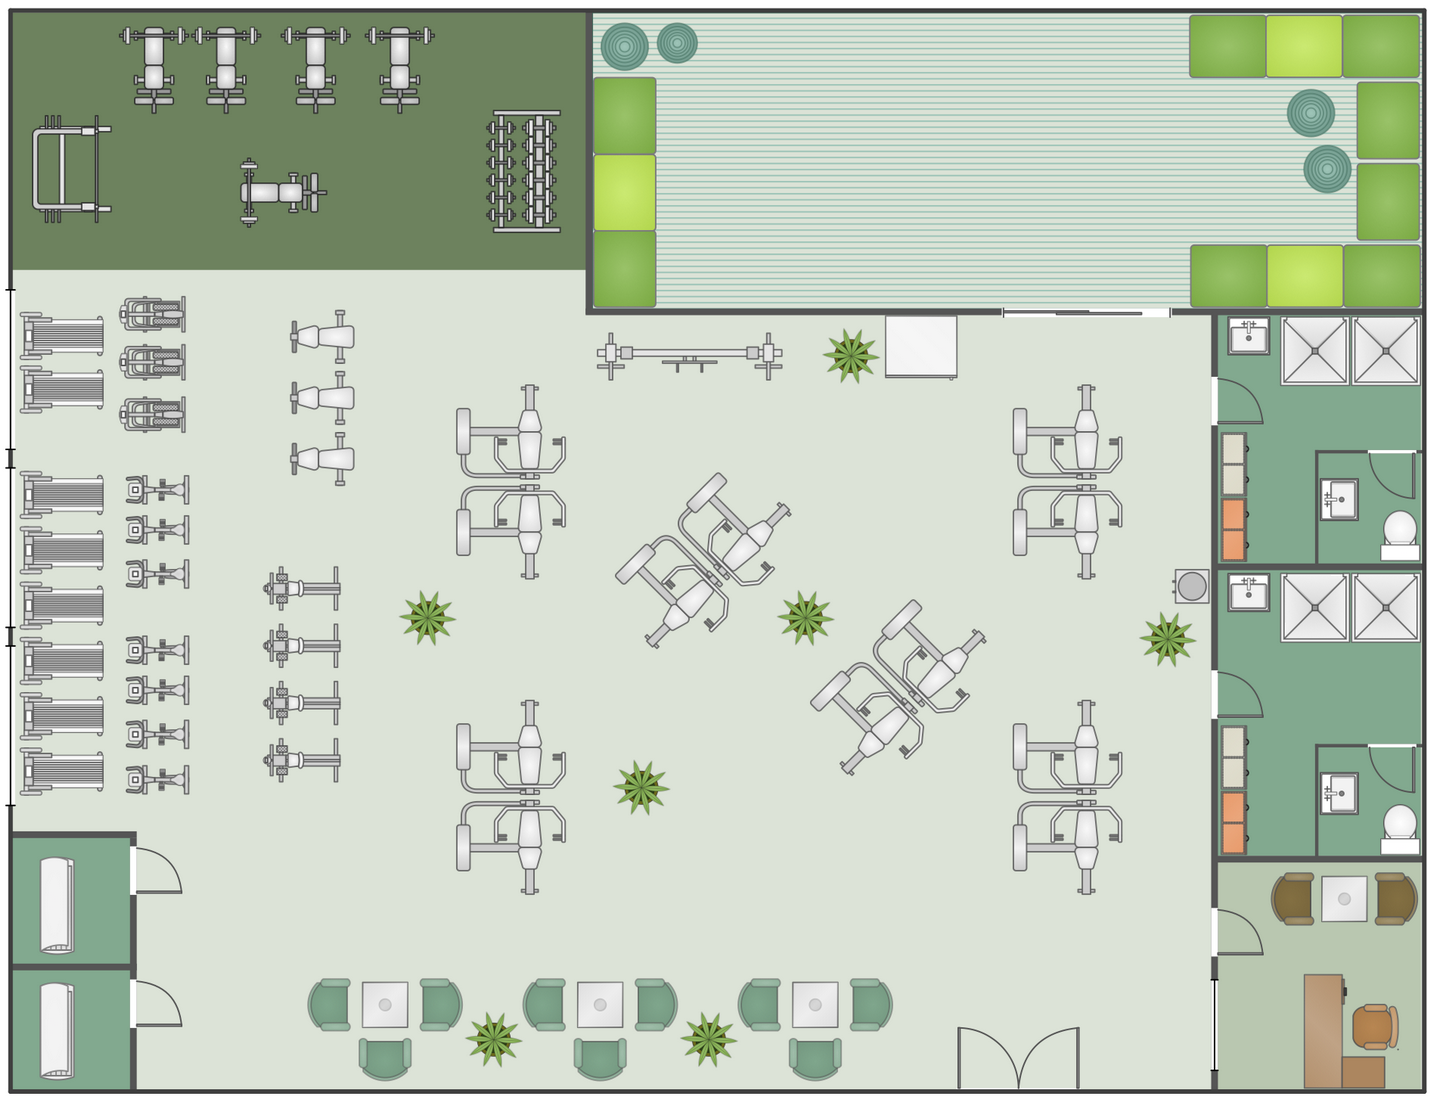 conceptdraw samples building plans gym and spa area plans henson gymnasium and cafeteria floor plan cunningham